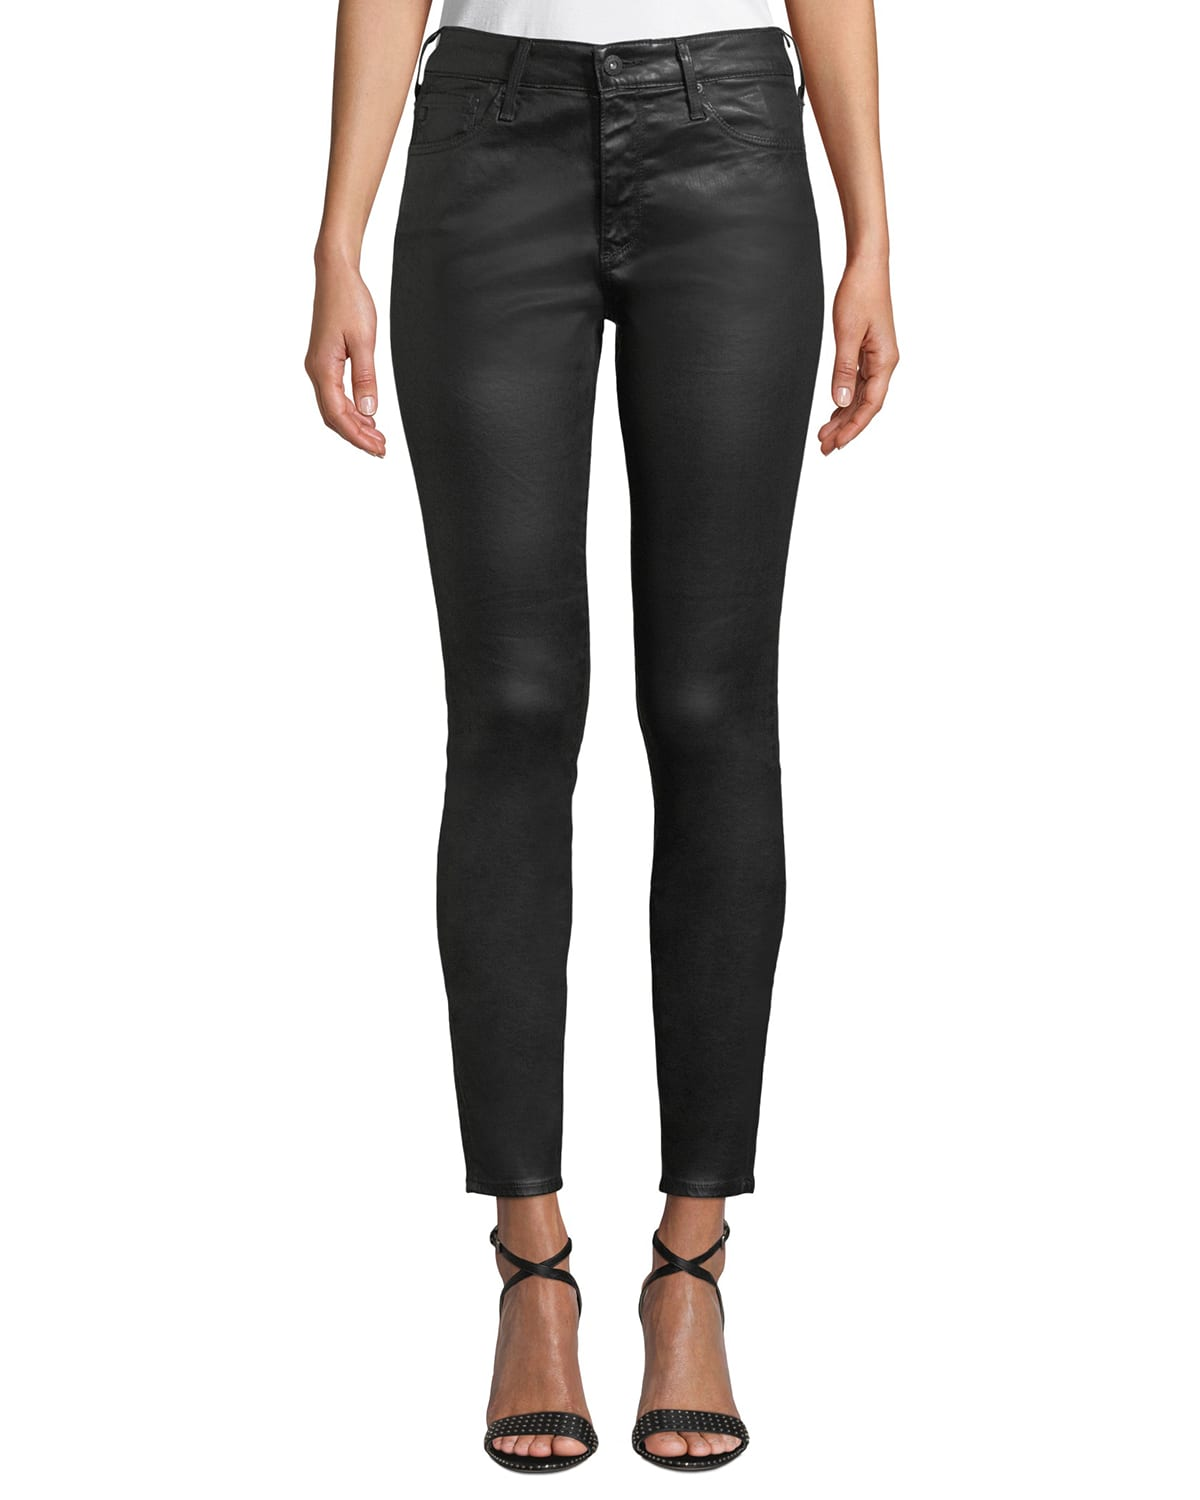 Farrah Leatherette High-Rise Ankle Skinny Jeans